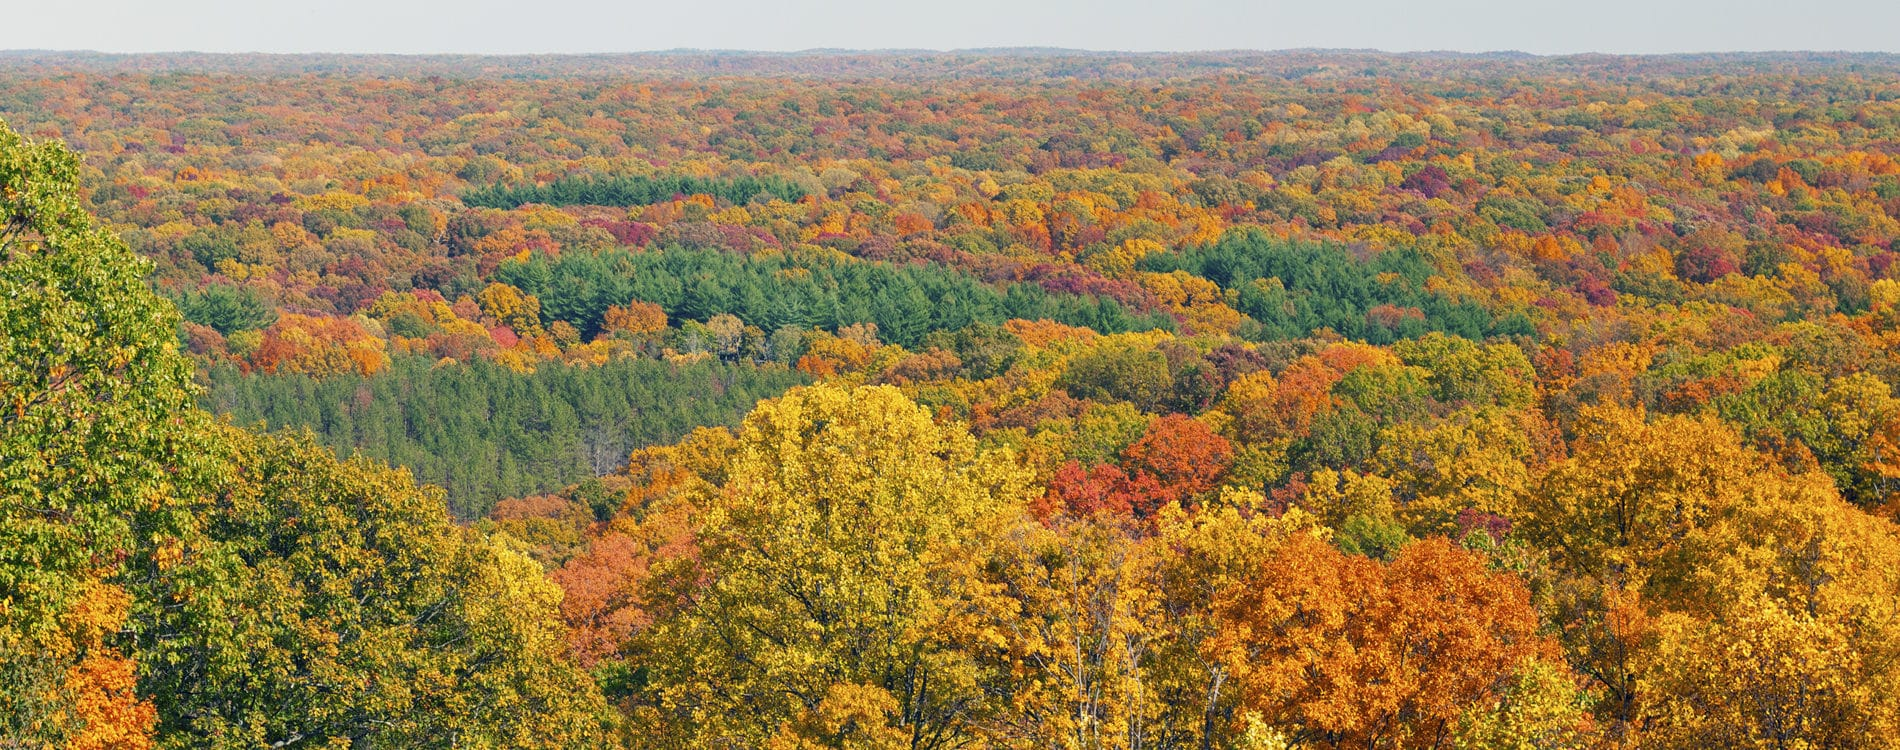 Aerial Autumn View of Brown County Indiana